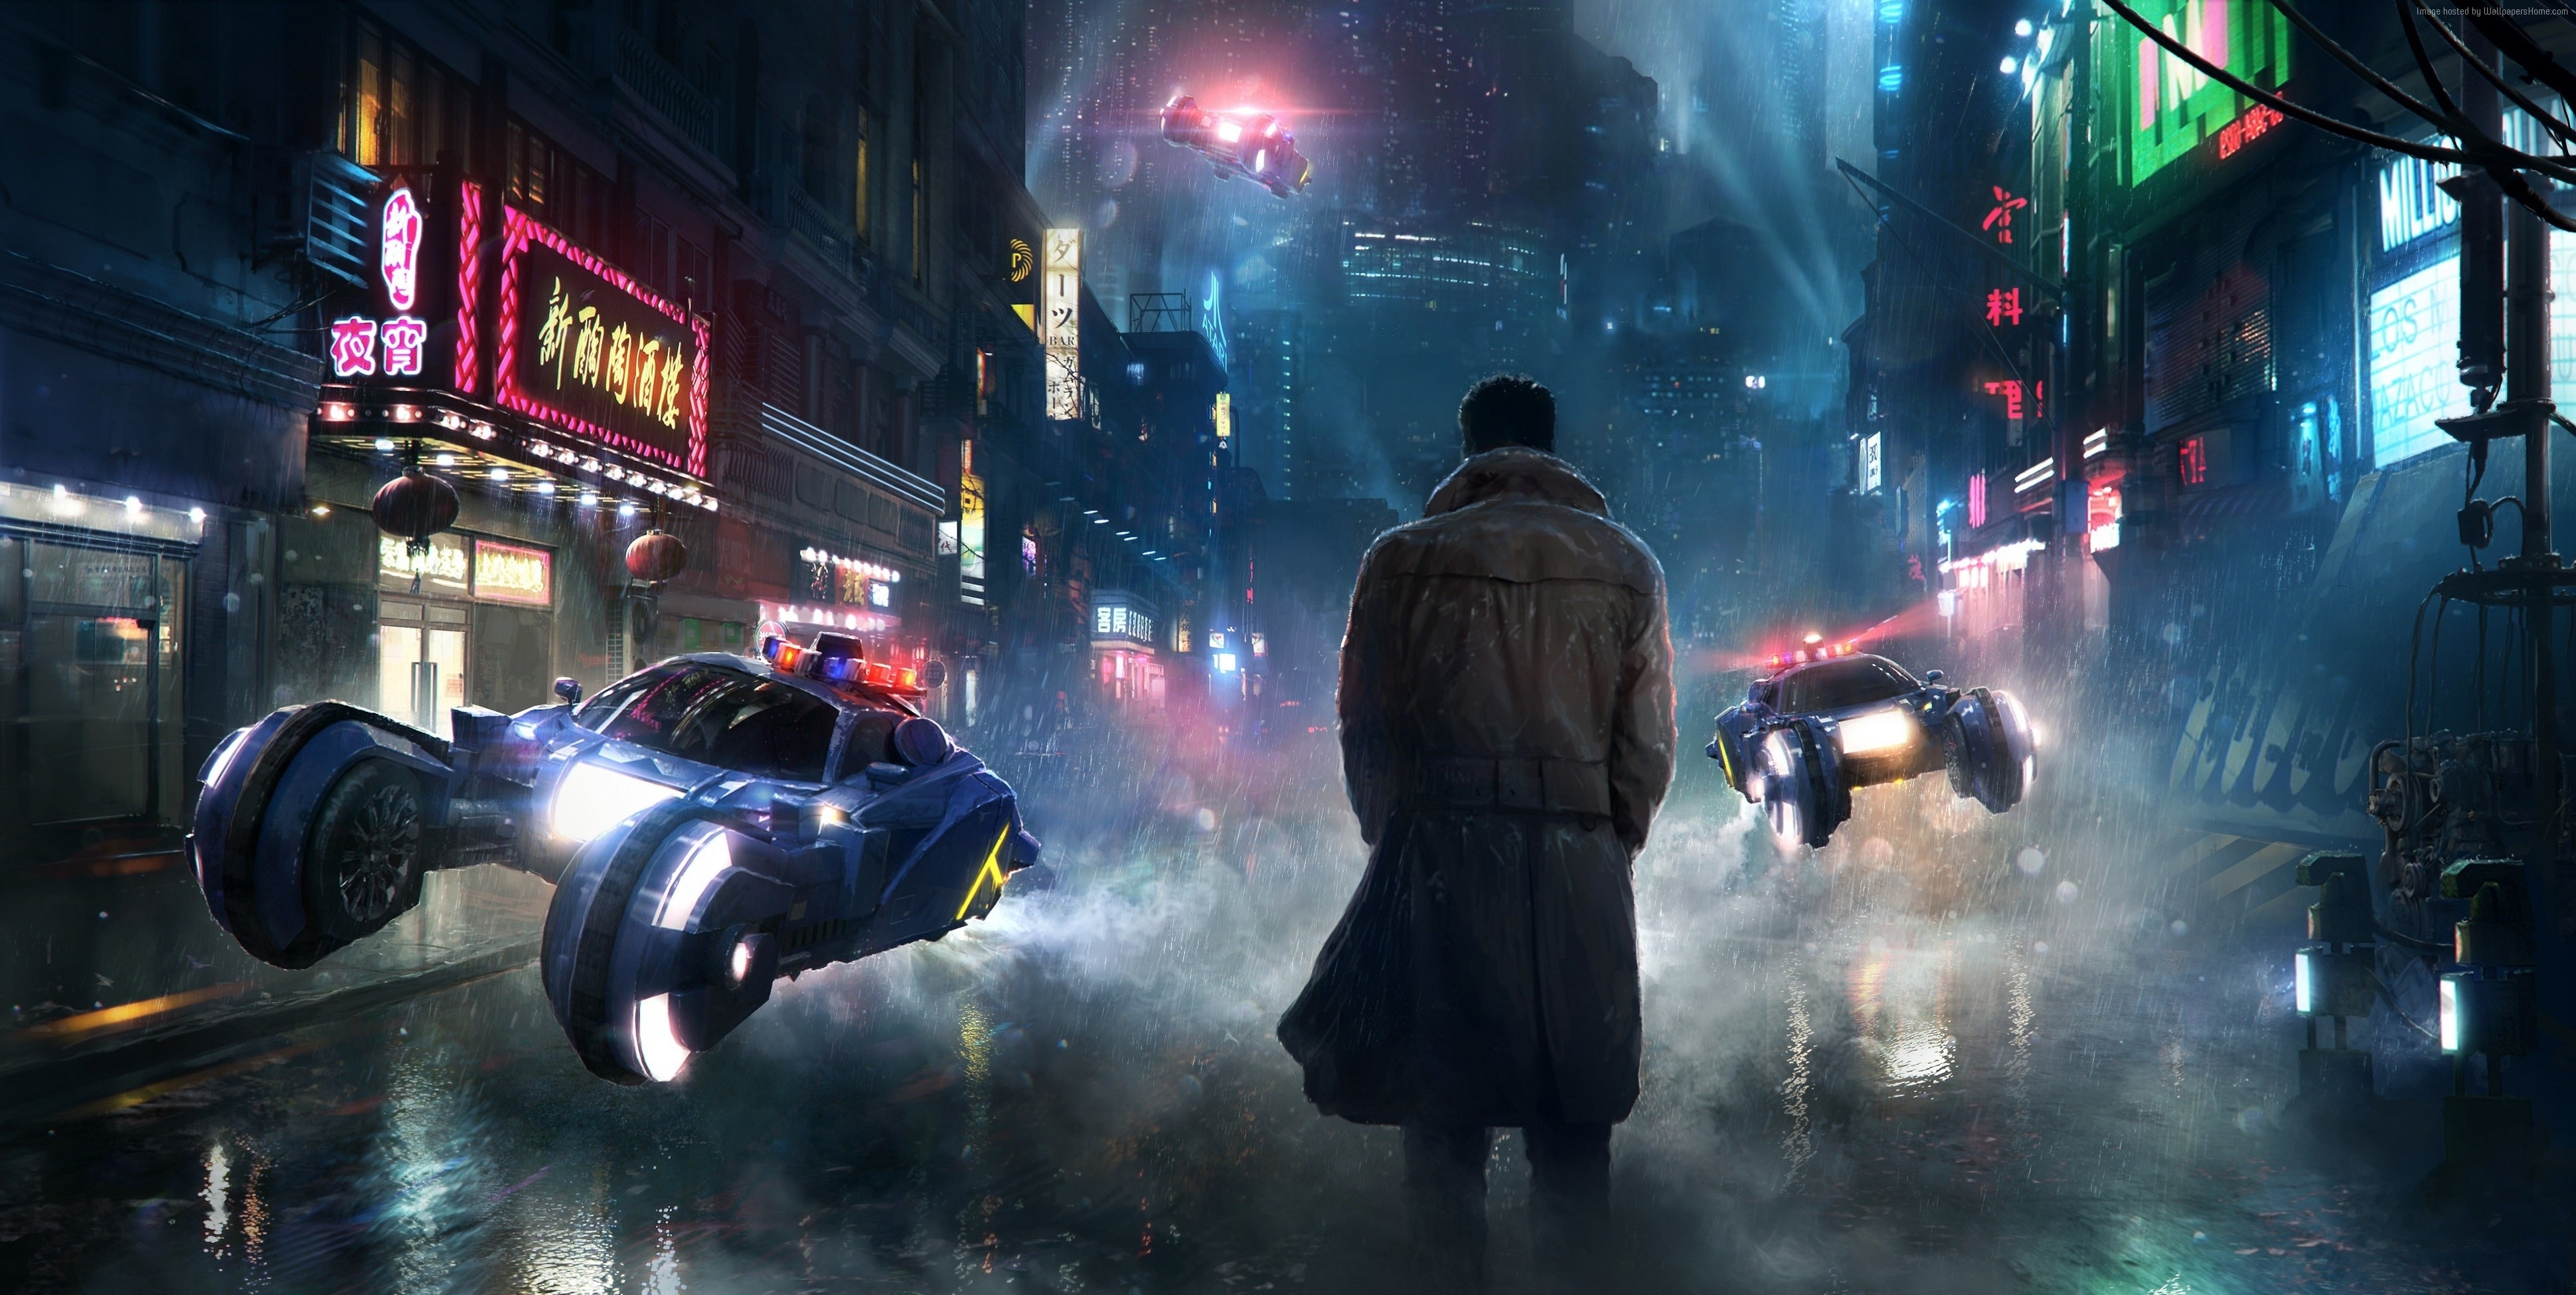 10 Most Popular Blade Runner Wallpaper 1920X1080 FULL HD 1920×1080 For PC Background